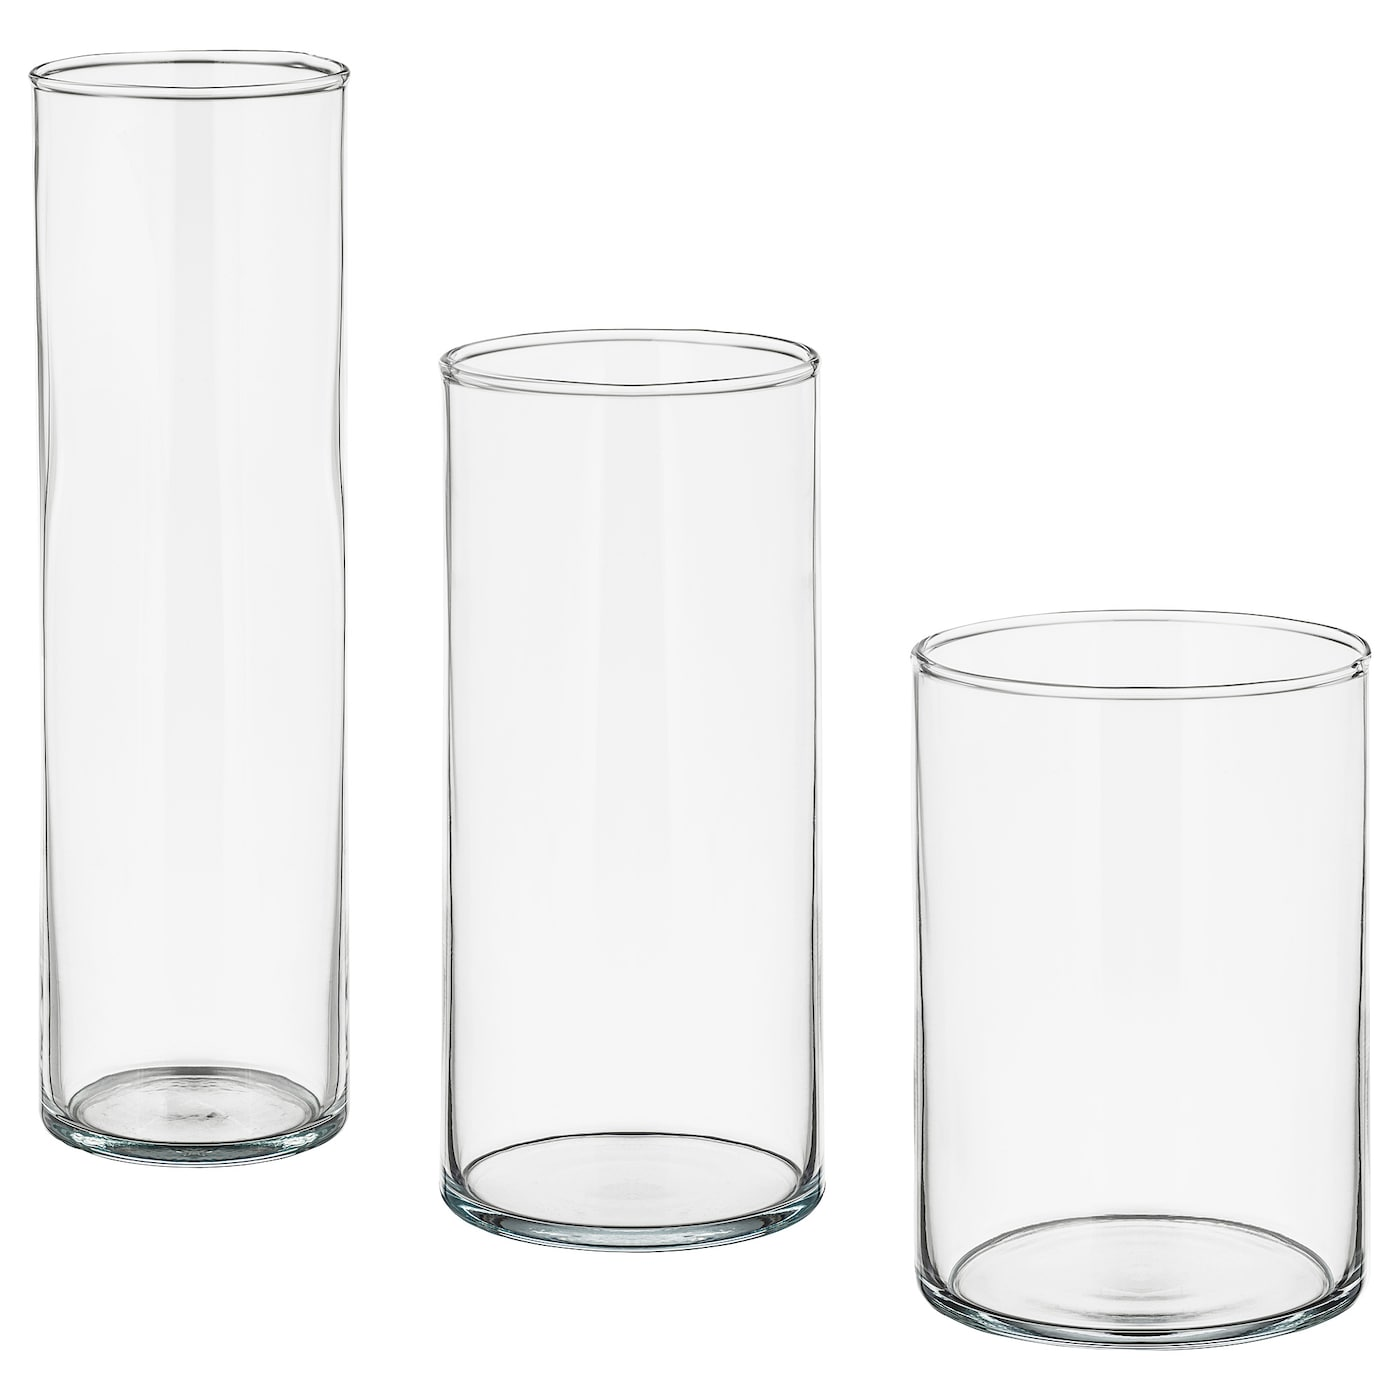 IKEA CYLINDER vase, set of 3 Can be stacked inside one another to save room when storing.